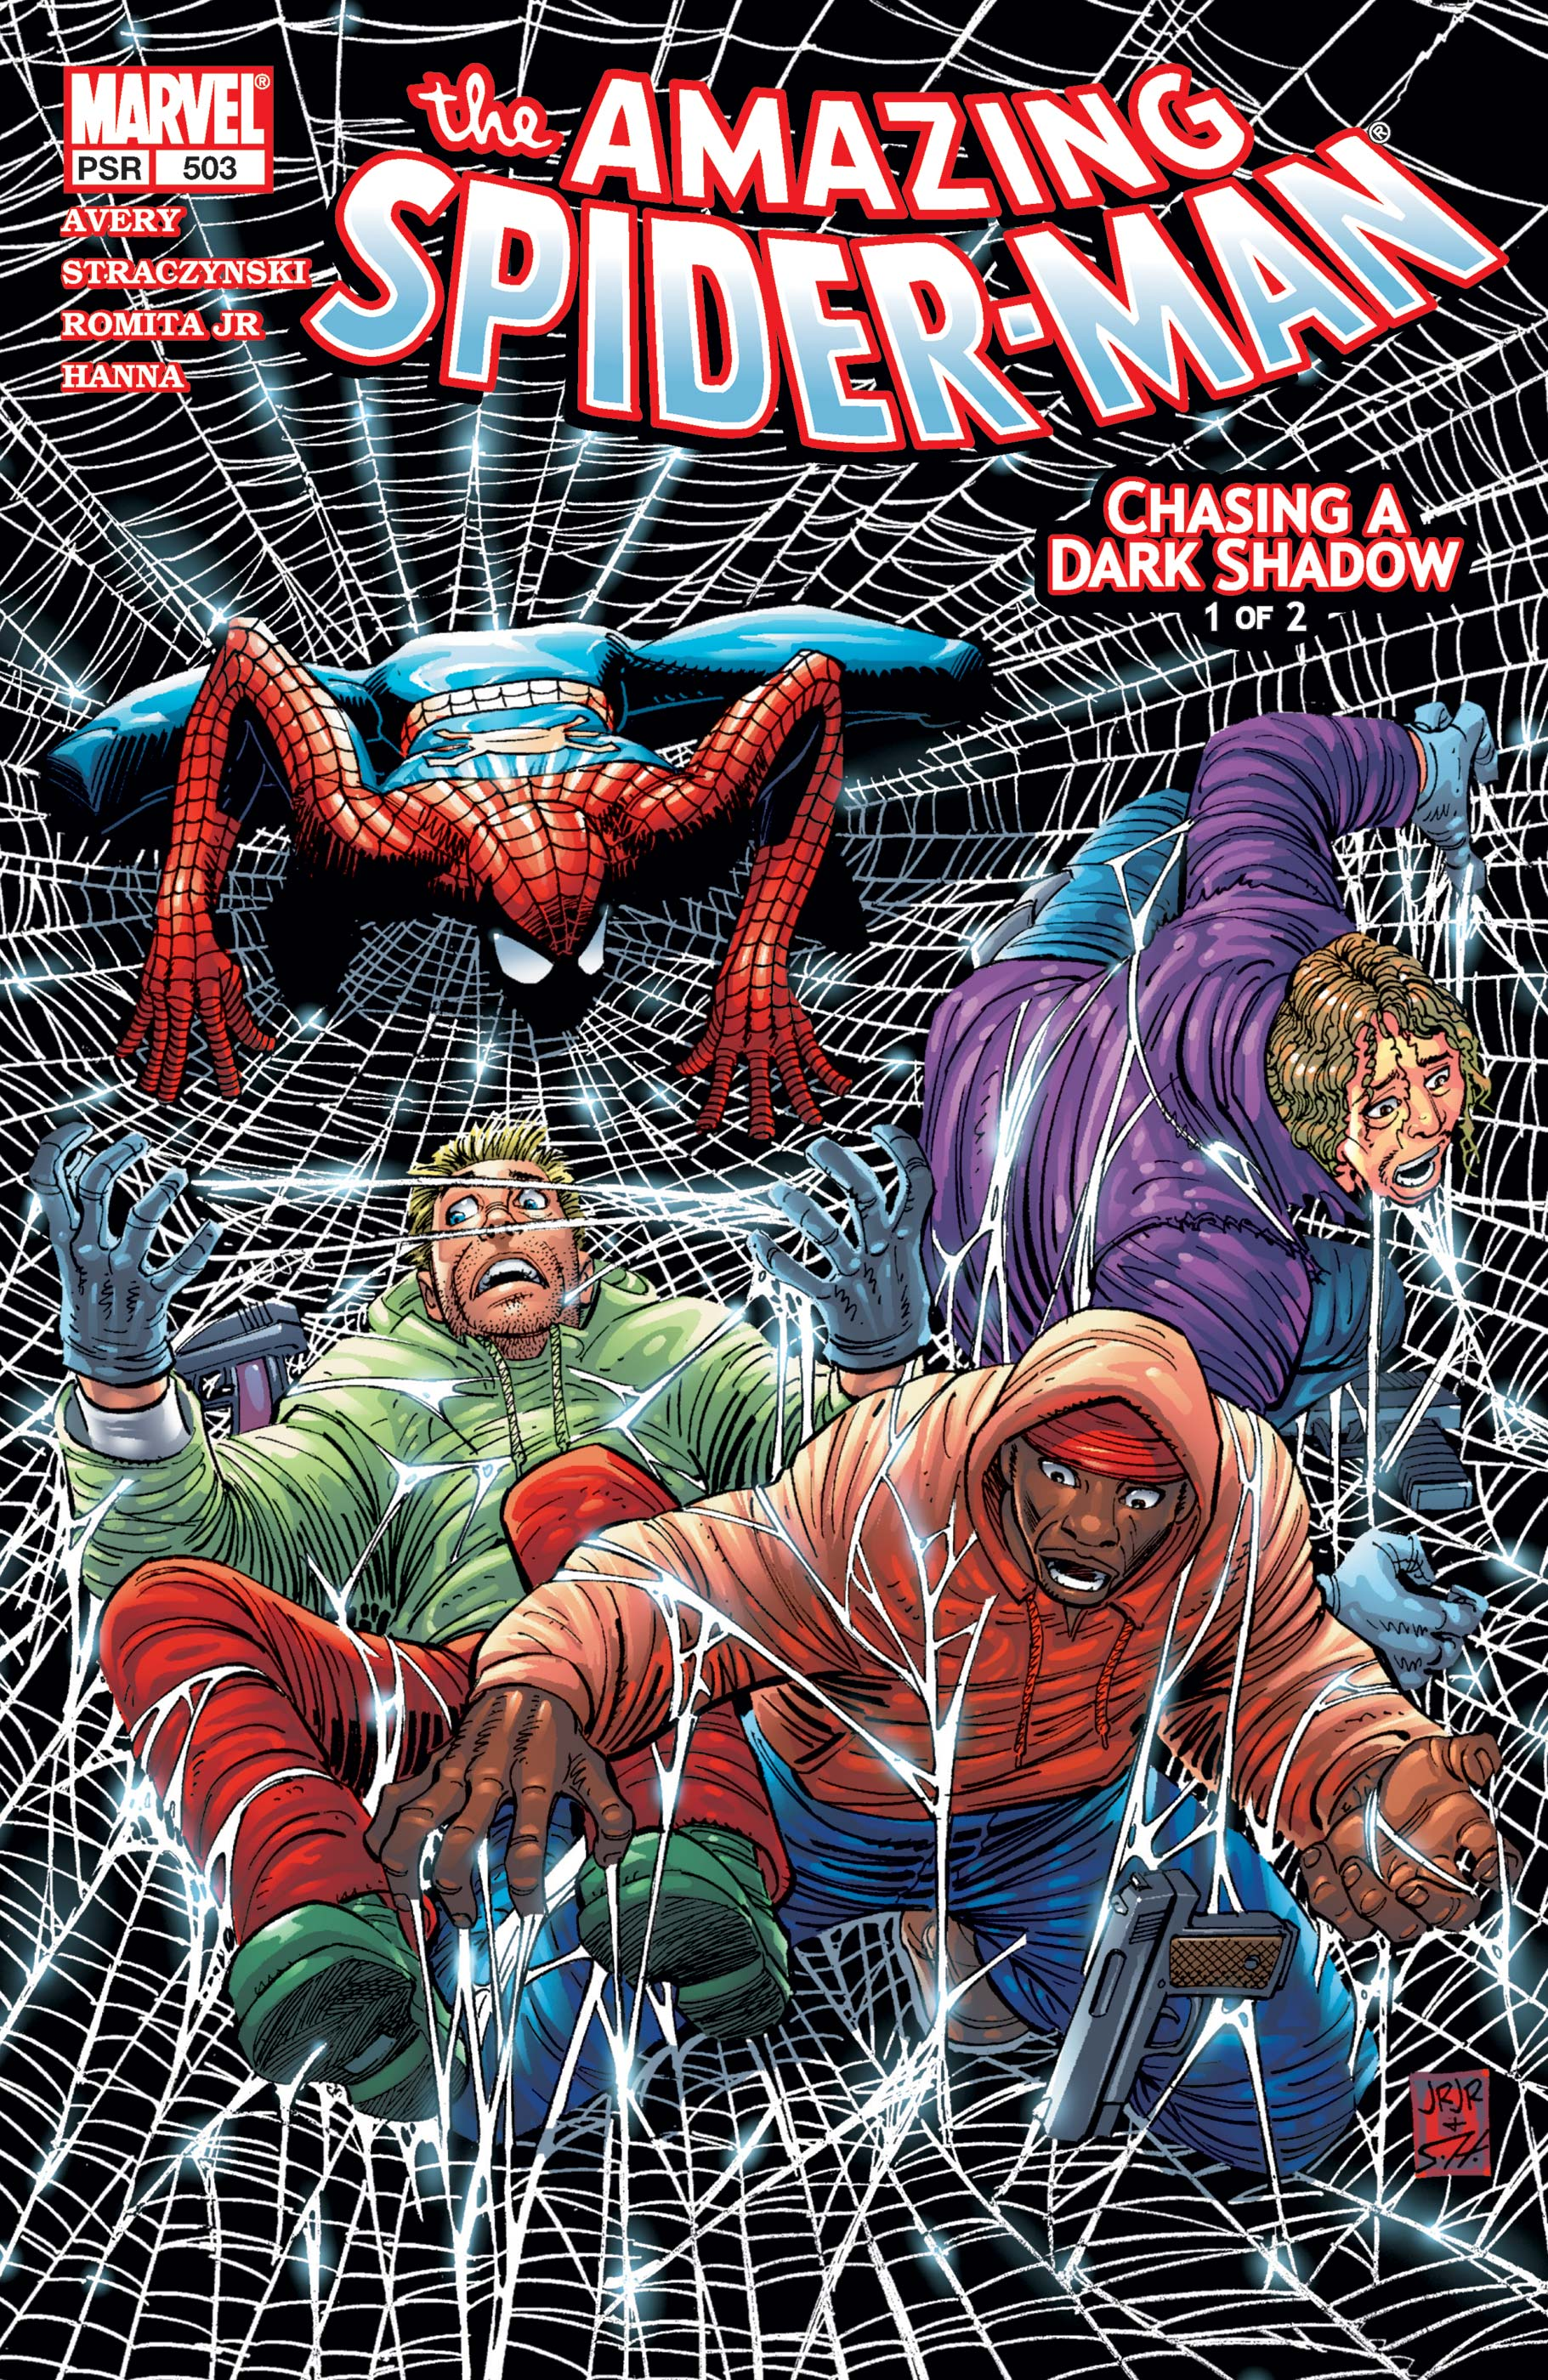 Amazing Spider-Man (1999) #503